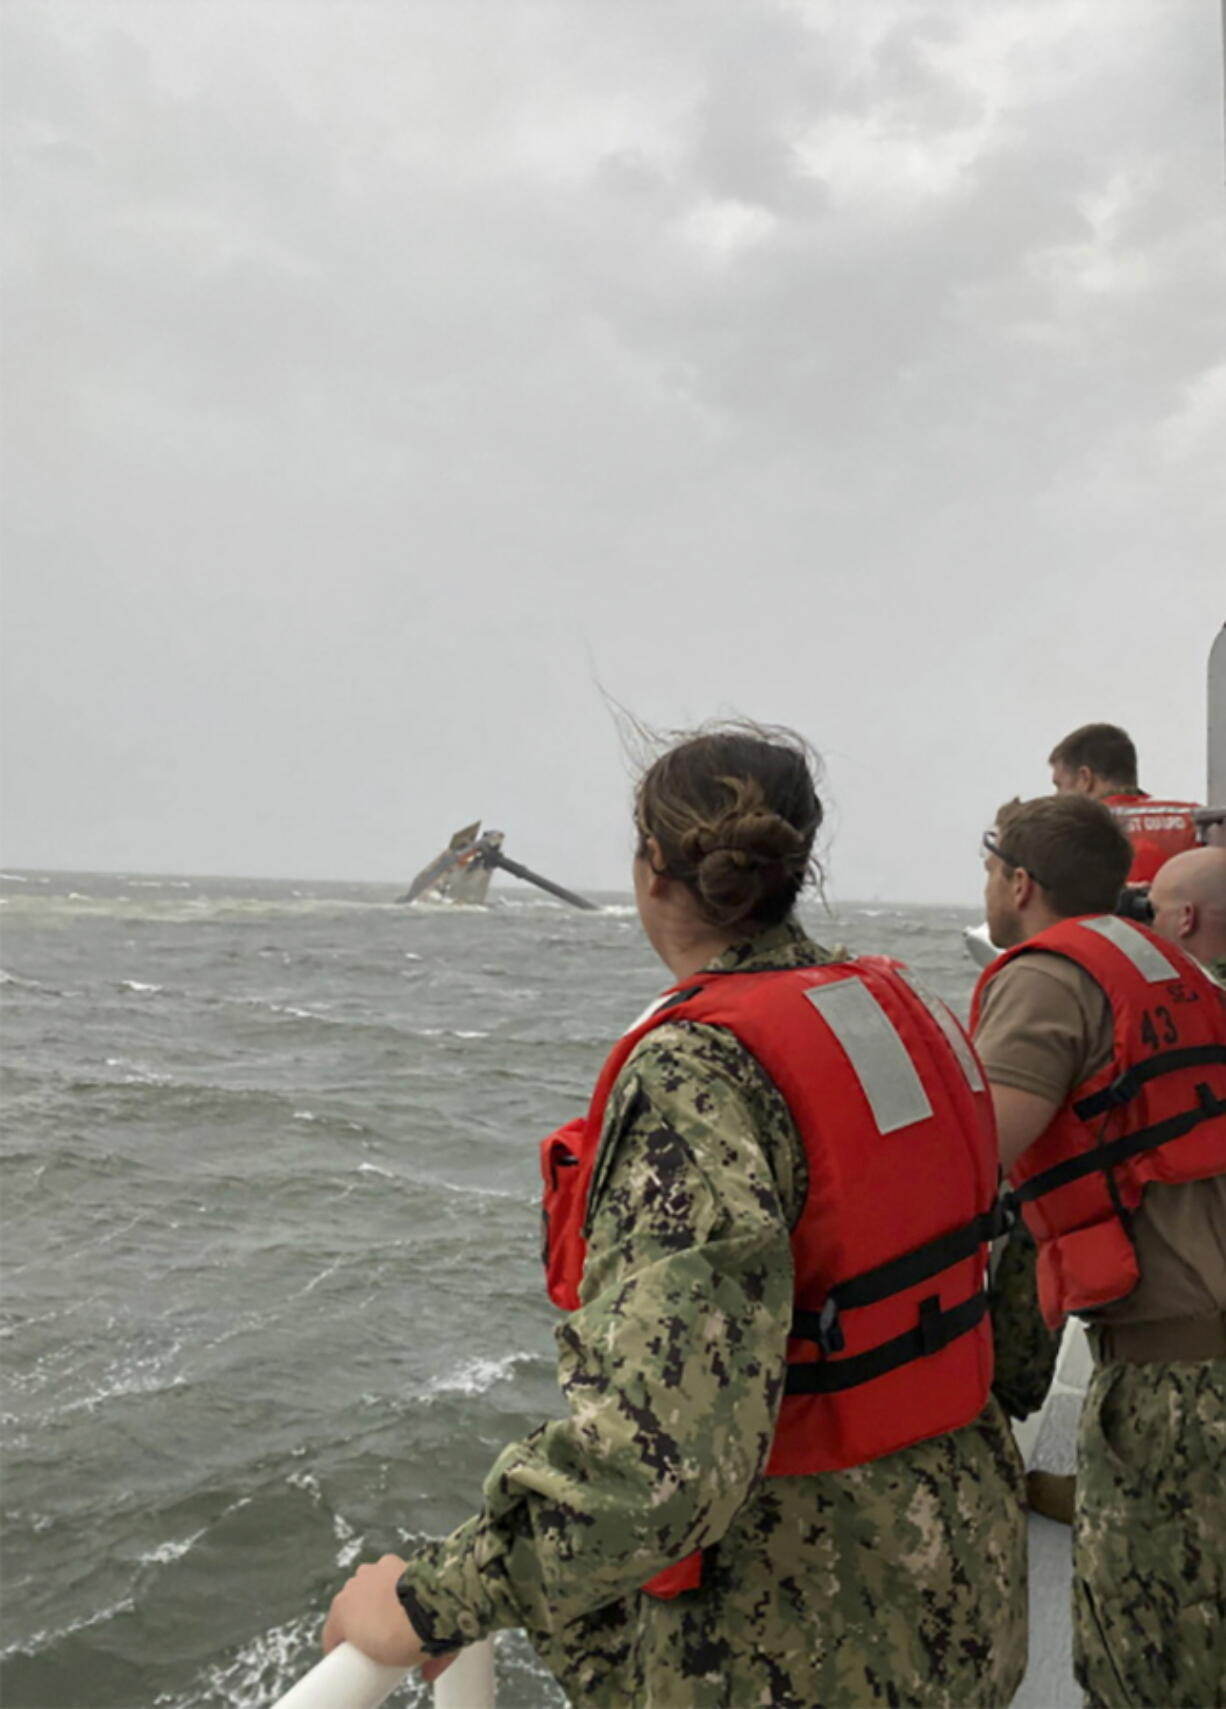 In this photo provided by the U.S. Coast Guard, crew members of the Coast Guard Cutter Glenn Harris scan the water while searching for those missing Tuesday, April 13, 2021, after a 175-foot commercial lift boat capsized 8 miles south of Grand Isle, La. The Seacor Power, an oil industry vessel, flipped over Tuesday in a microburst of dangerous wind and high seas. (U.S.